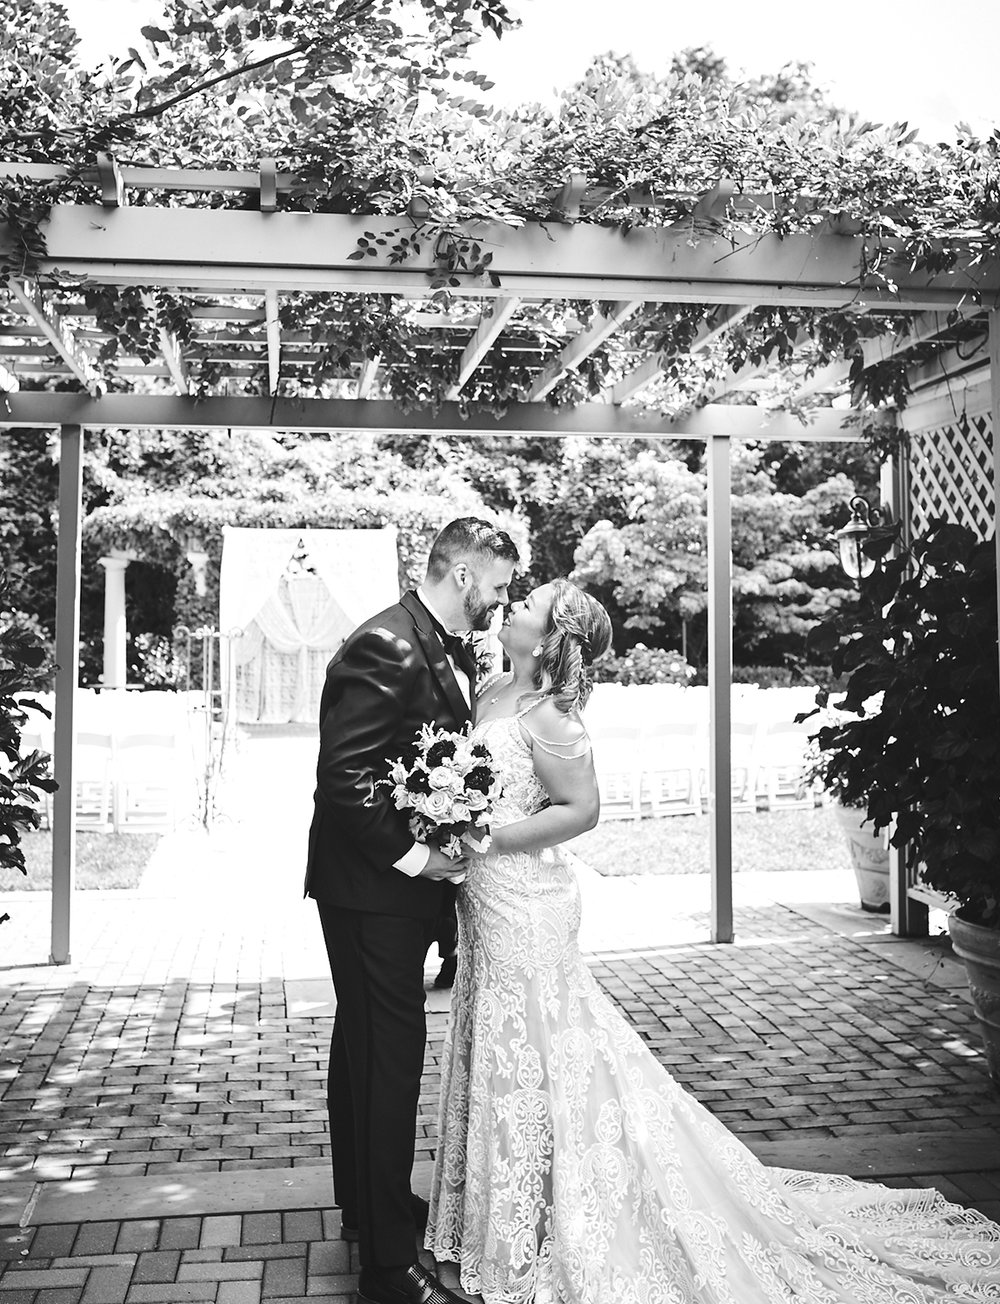 180922_CrestHollowCountryClubWeddingPhotography_LongIslandWeddingPhotographer_By_BriJohnsonWeddings_0069.jpg